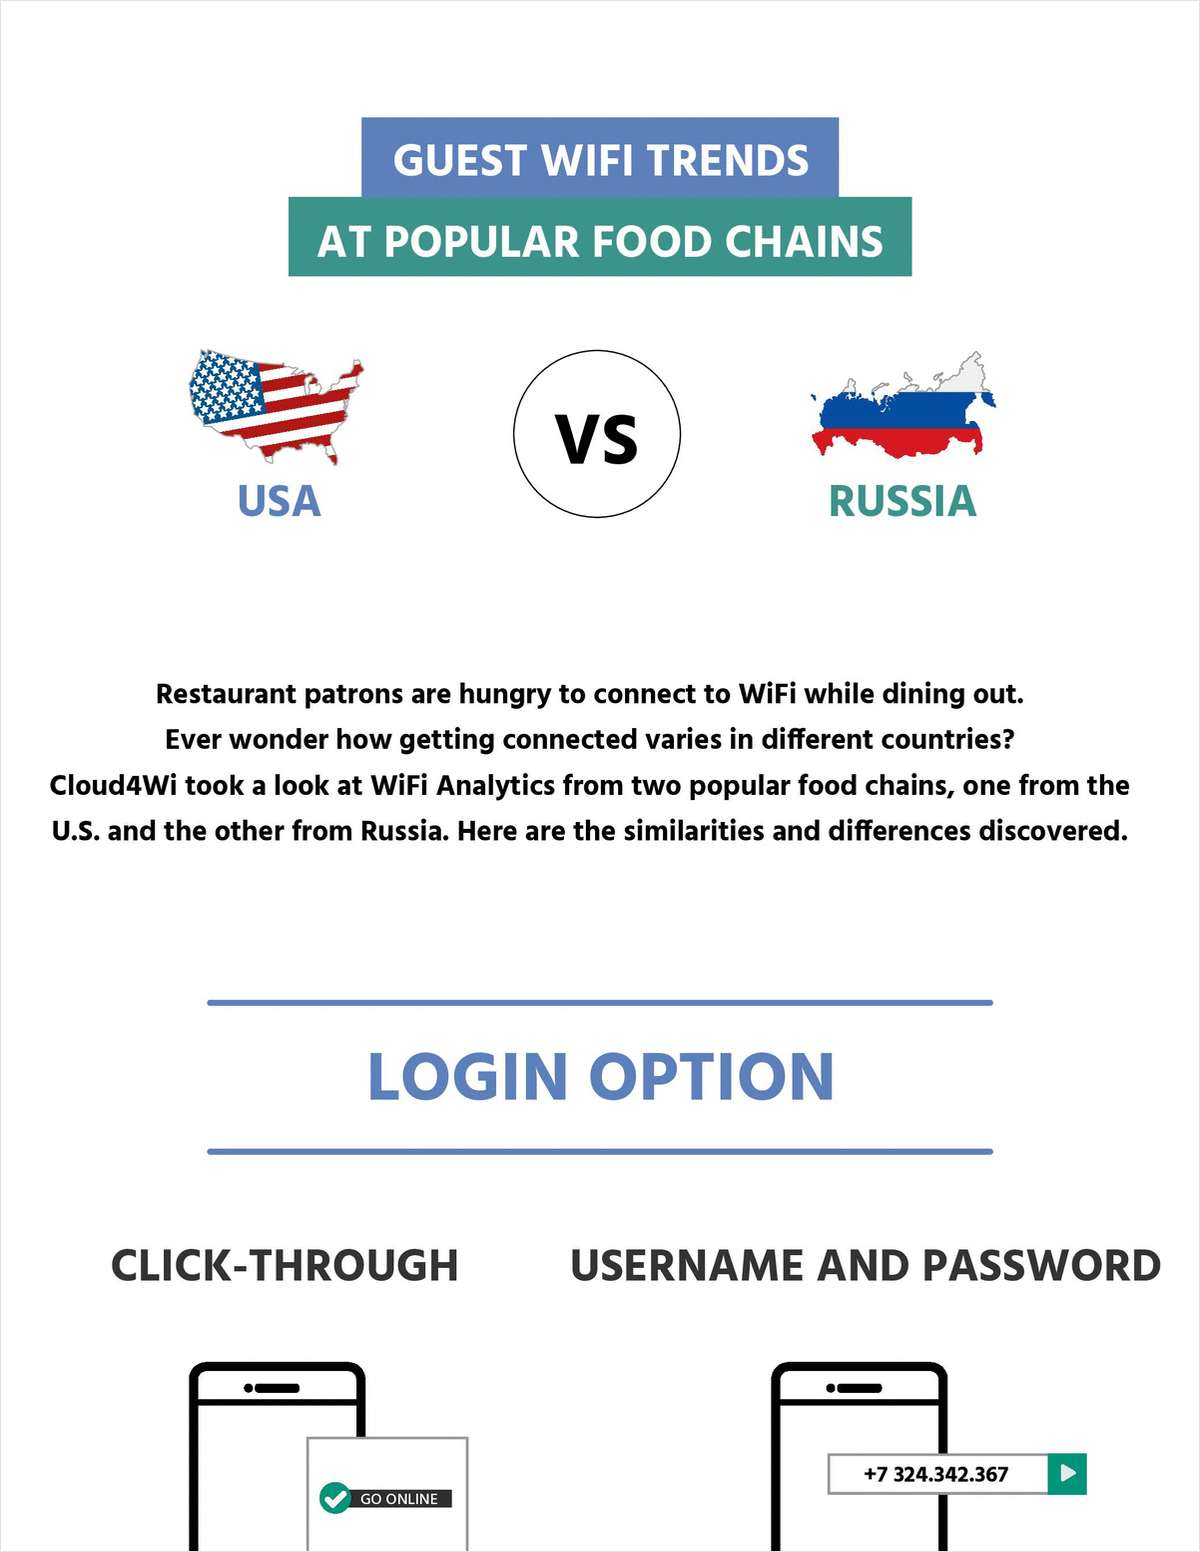 Guest WiFi Trends at Popular Food Chains